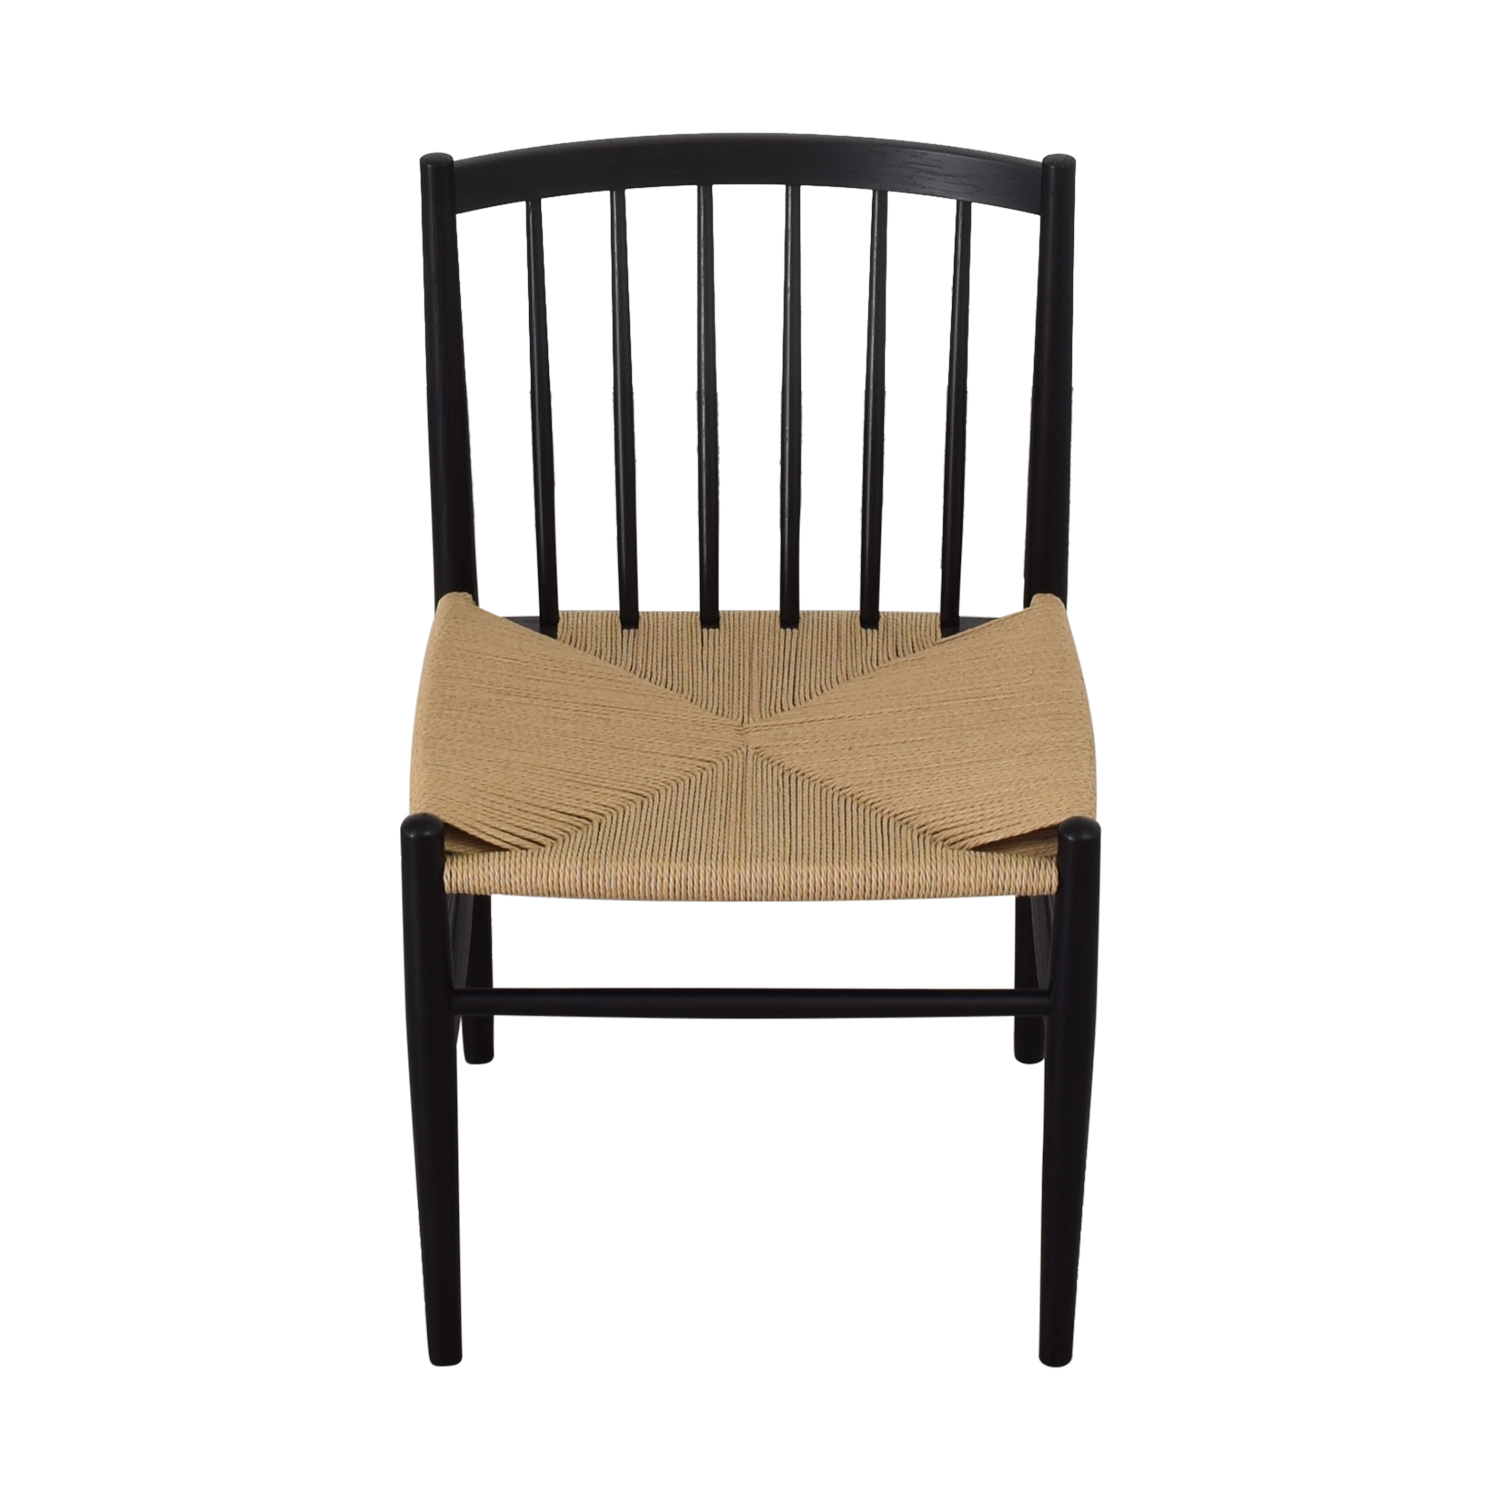 Mater Mater J80 Dining Side Chair dimensions